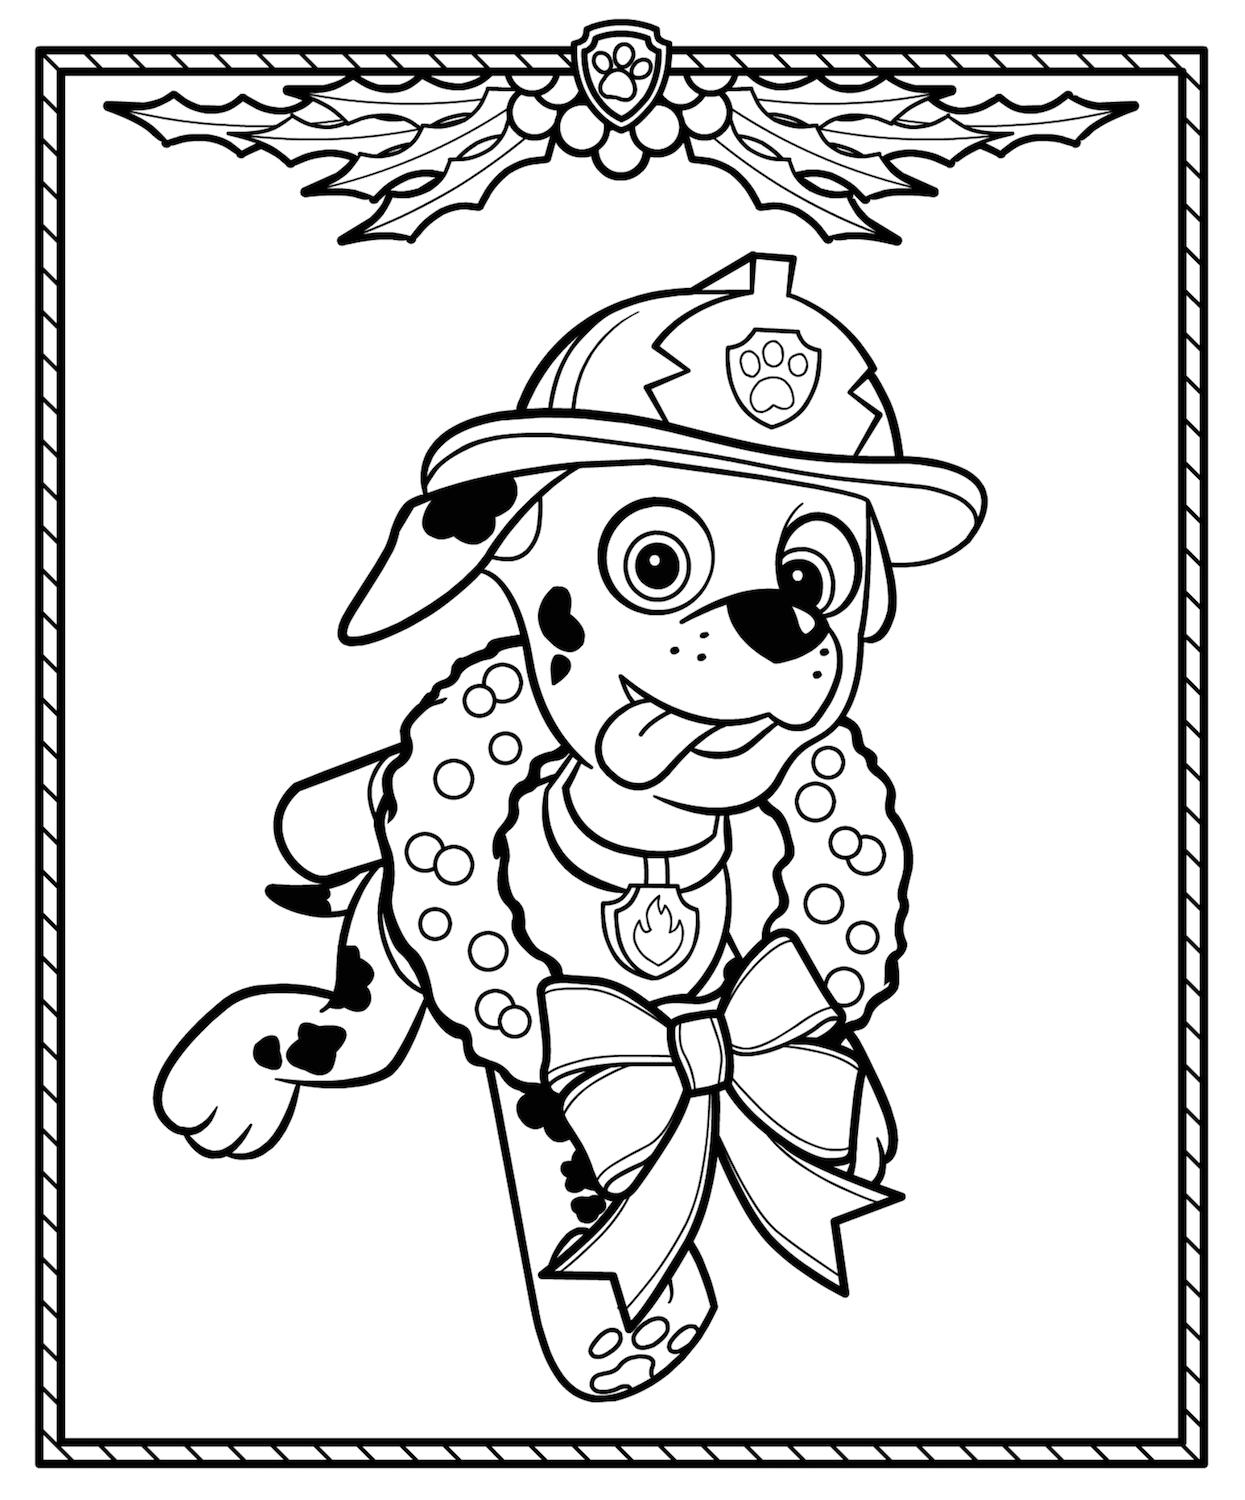 c free chrismas coloring pages | Pin on *~Christmas Delights!~*